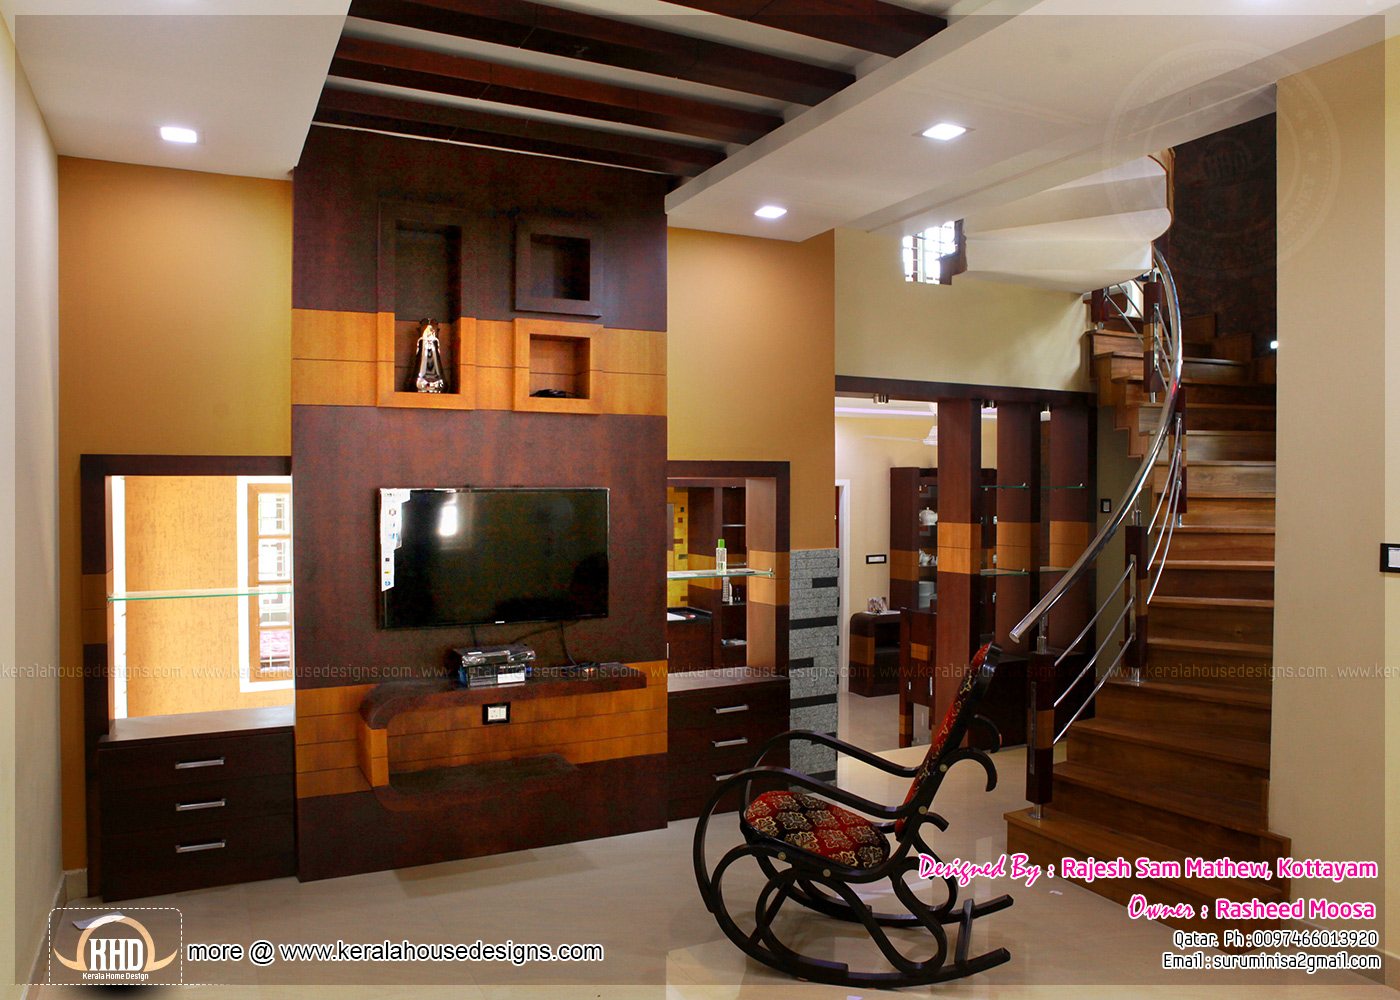 Kerala interior design with photos kerala home design for House plans with interior photos